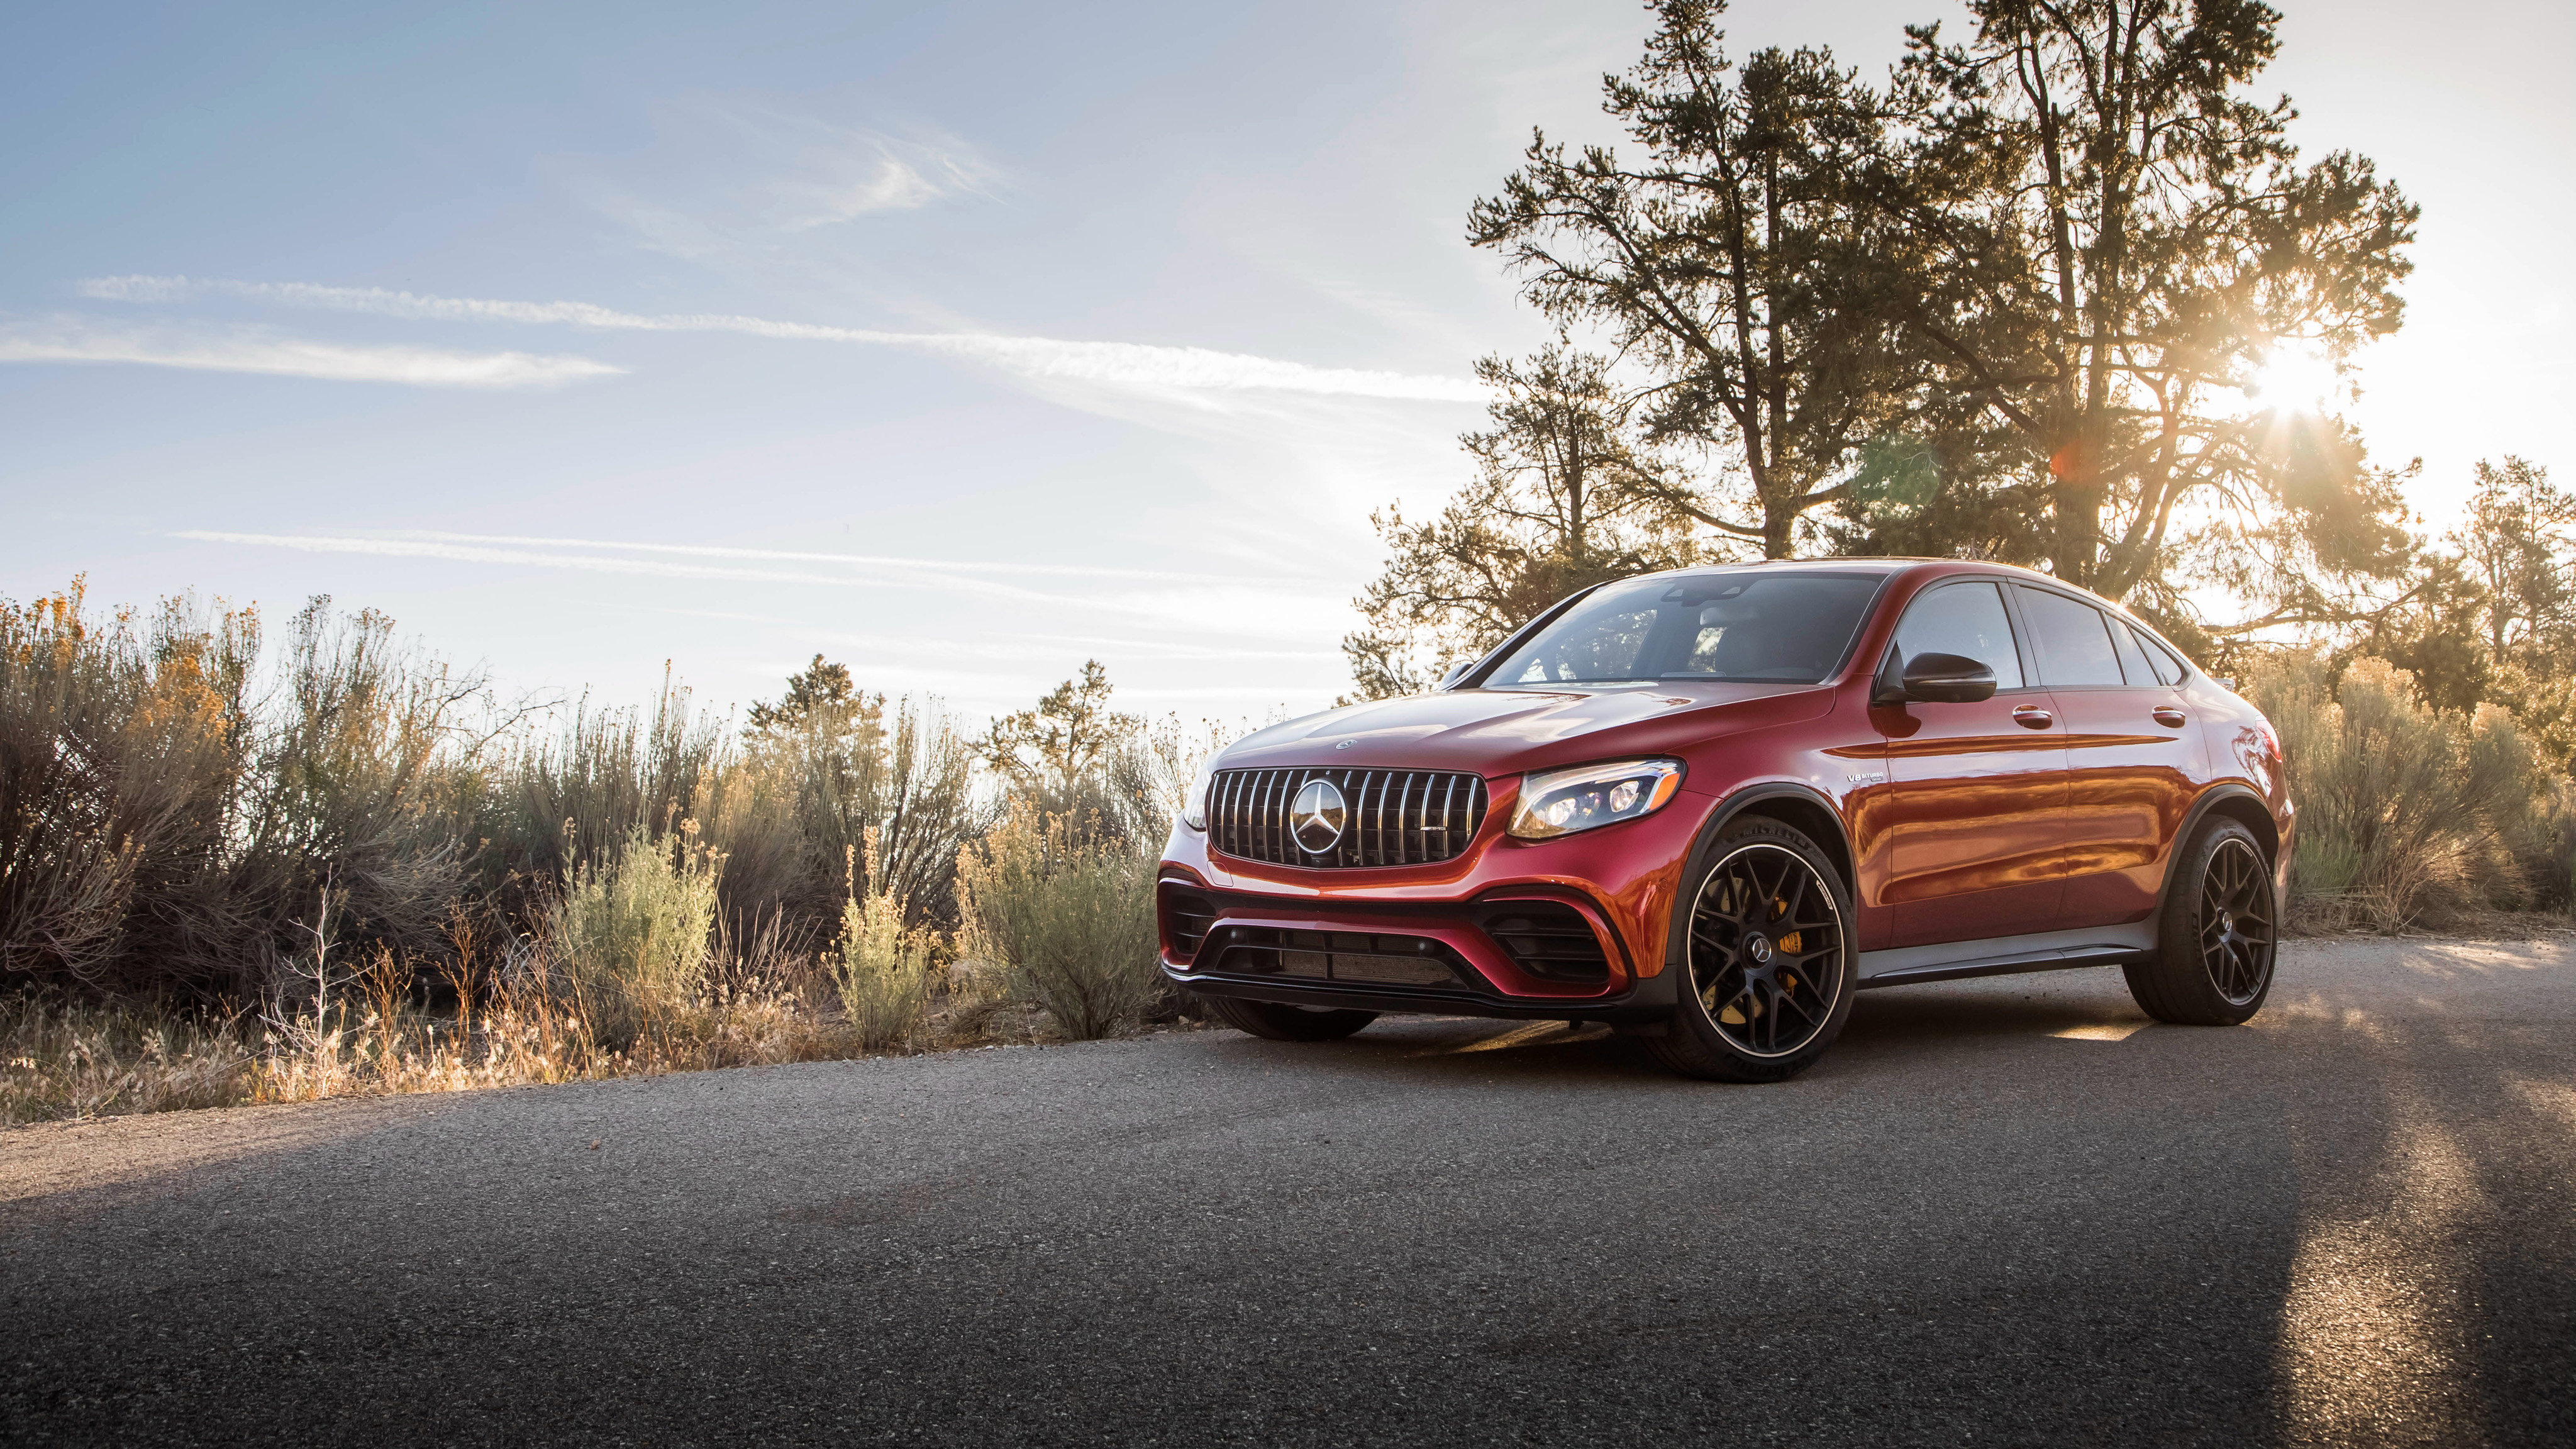 2018 Mercedes Amg Glc 63 S 4matic Coupe 4k Wallpaper Hd Car Wallpapers Id 10562